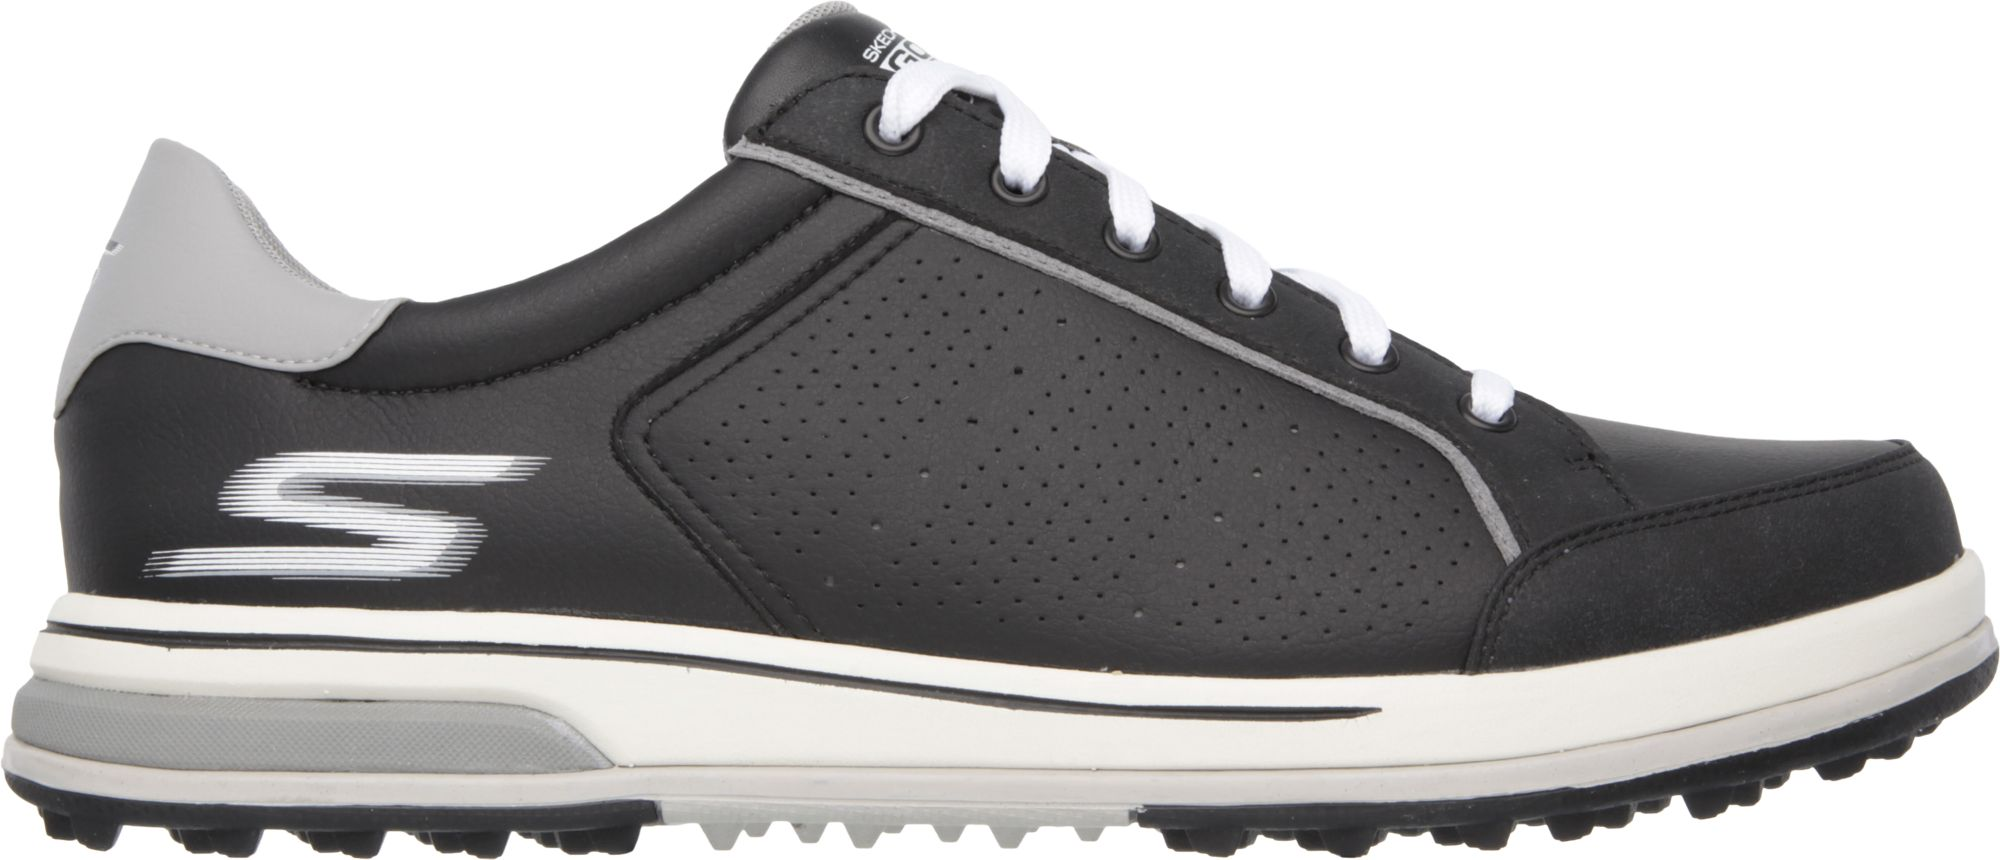 SKECHERS GO GOLF – Drive 2 Golf Shoes